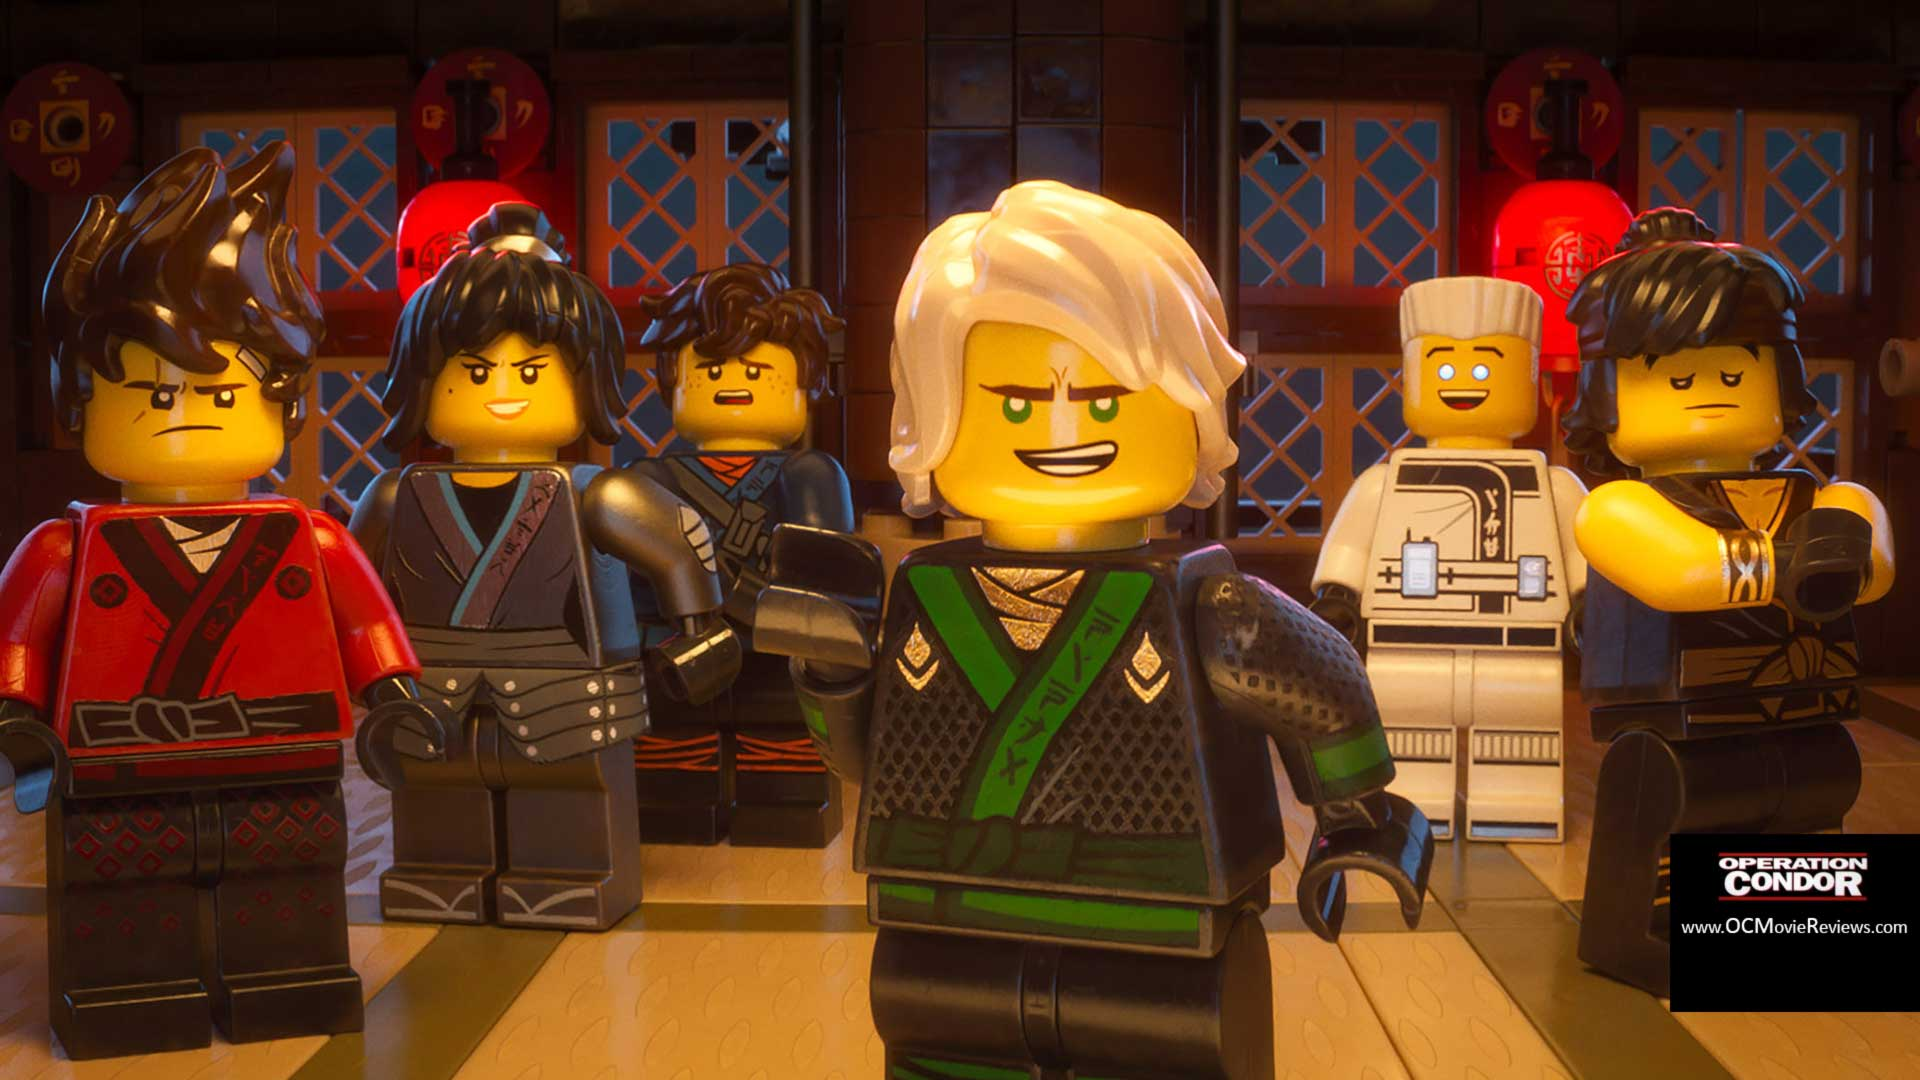 The Lego Ninjago Movie Review - OC Movie Reviews - Movie Reviews, Movie News, Documentary Reviews, Short Films, Short Film Reviews, Trailers, Movie Trailers, Interviews, film reviews, film news, hollywood, indie films, documentaries